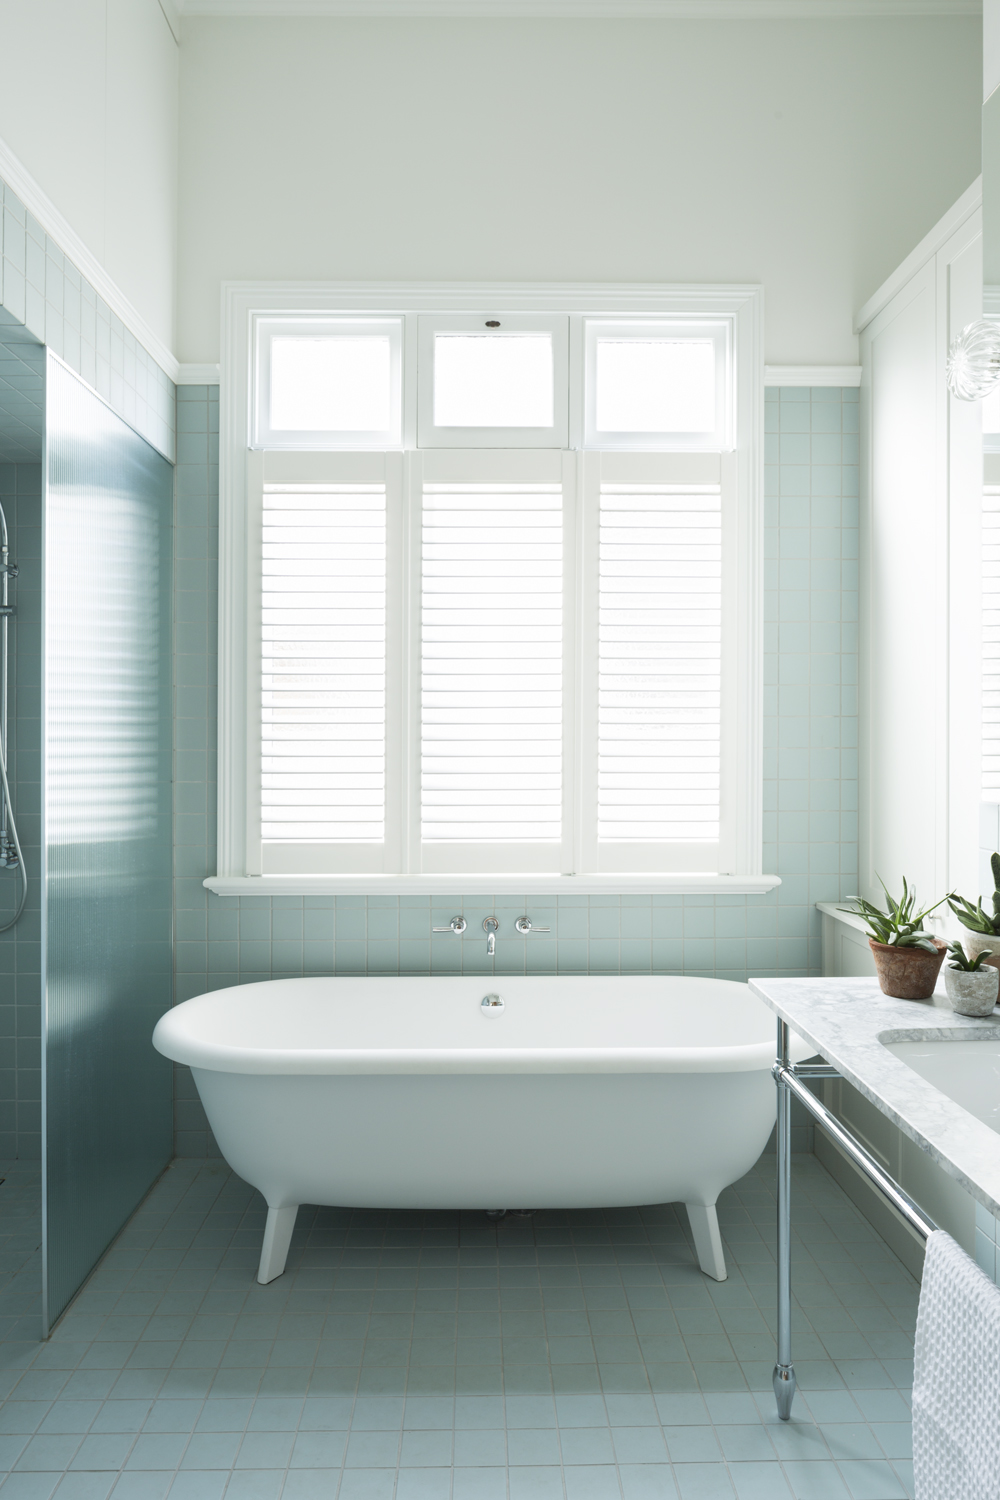 Clifton Hill house bathroom design by Melbourne interior designer Meredith Lee